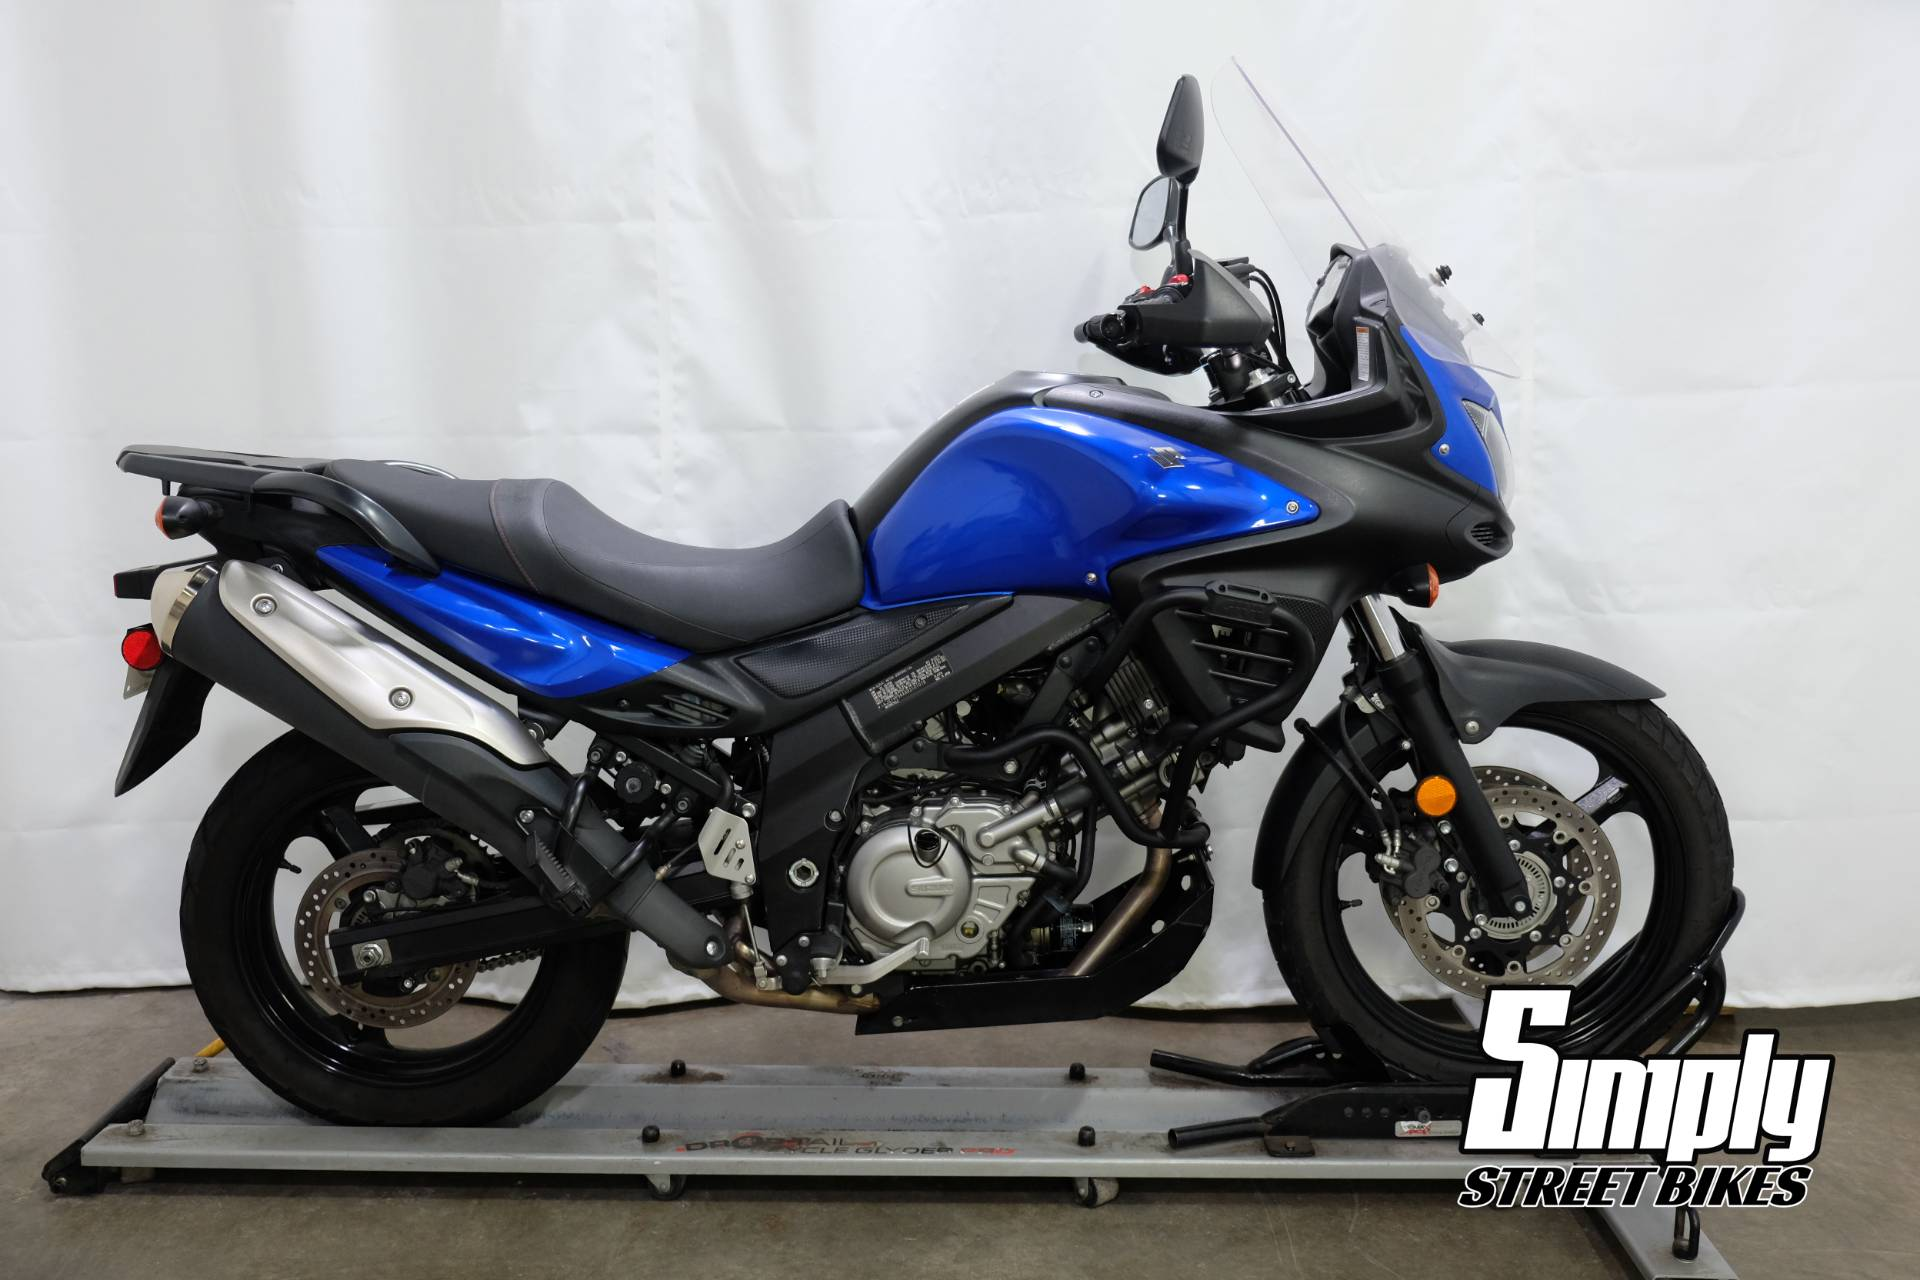 2013 Suzuki V-Strom 650 ABS in Eden Prairie, Minnesota - Photo 1